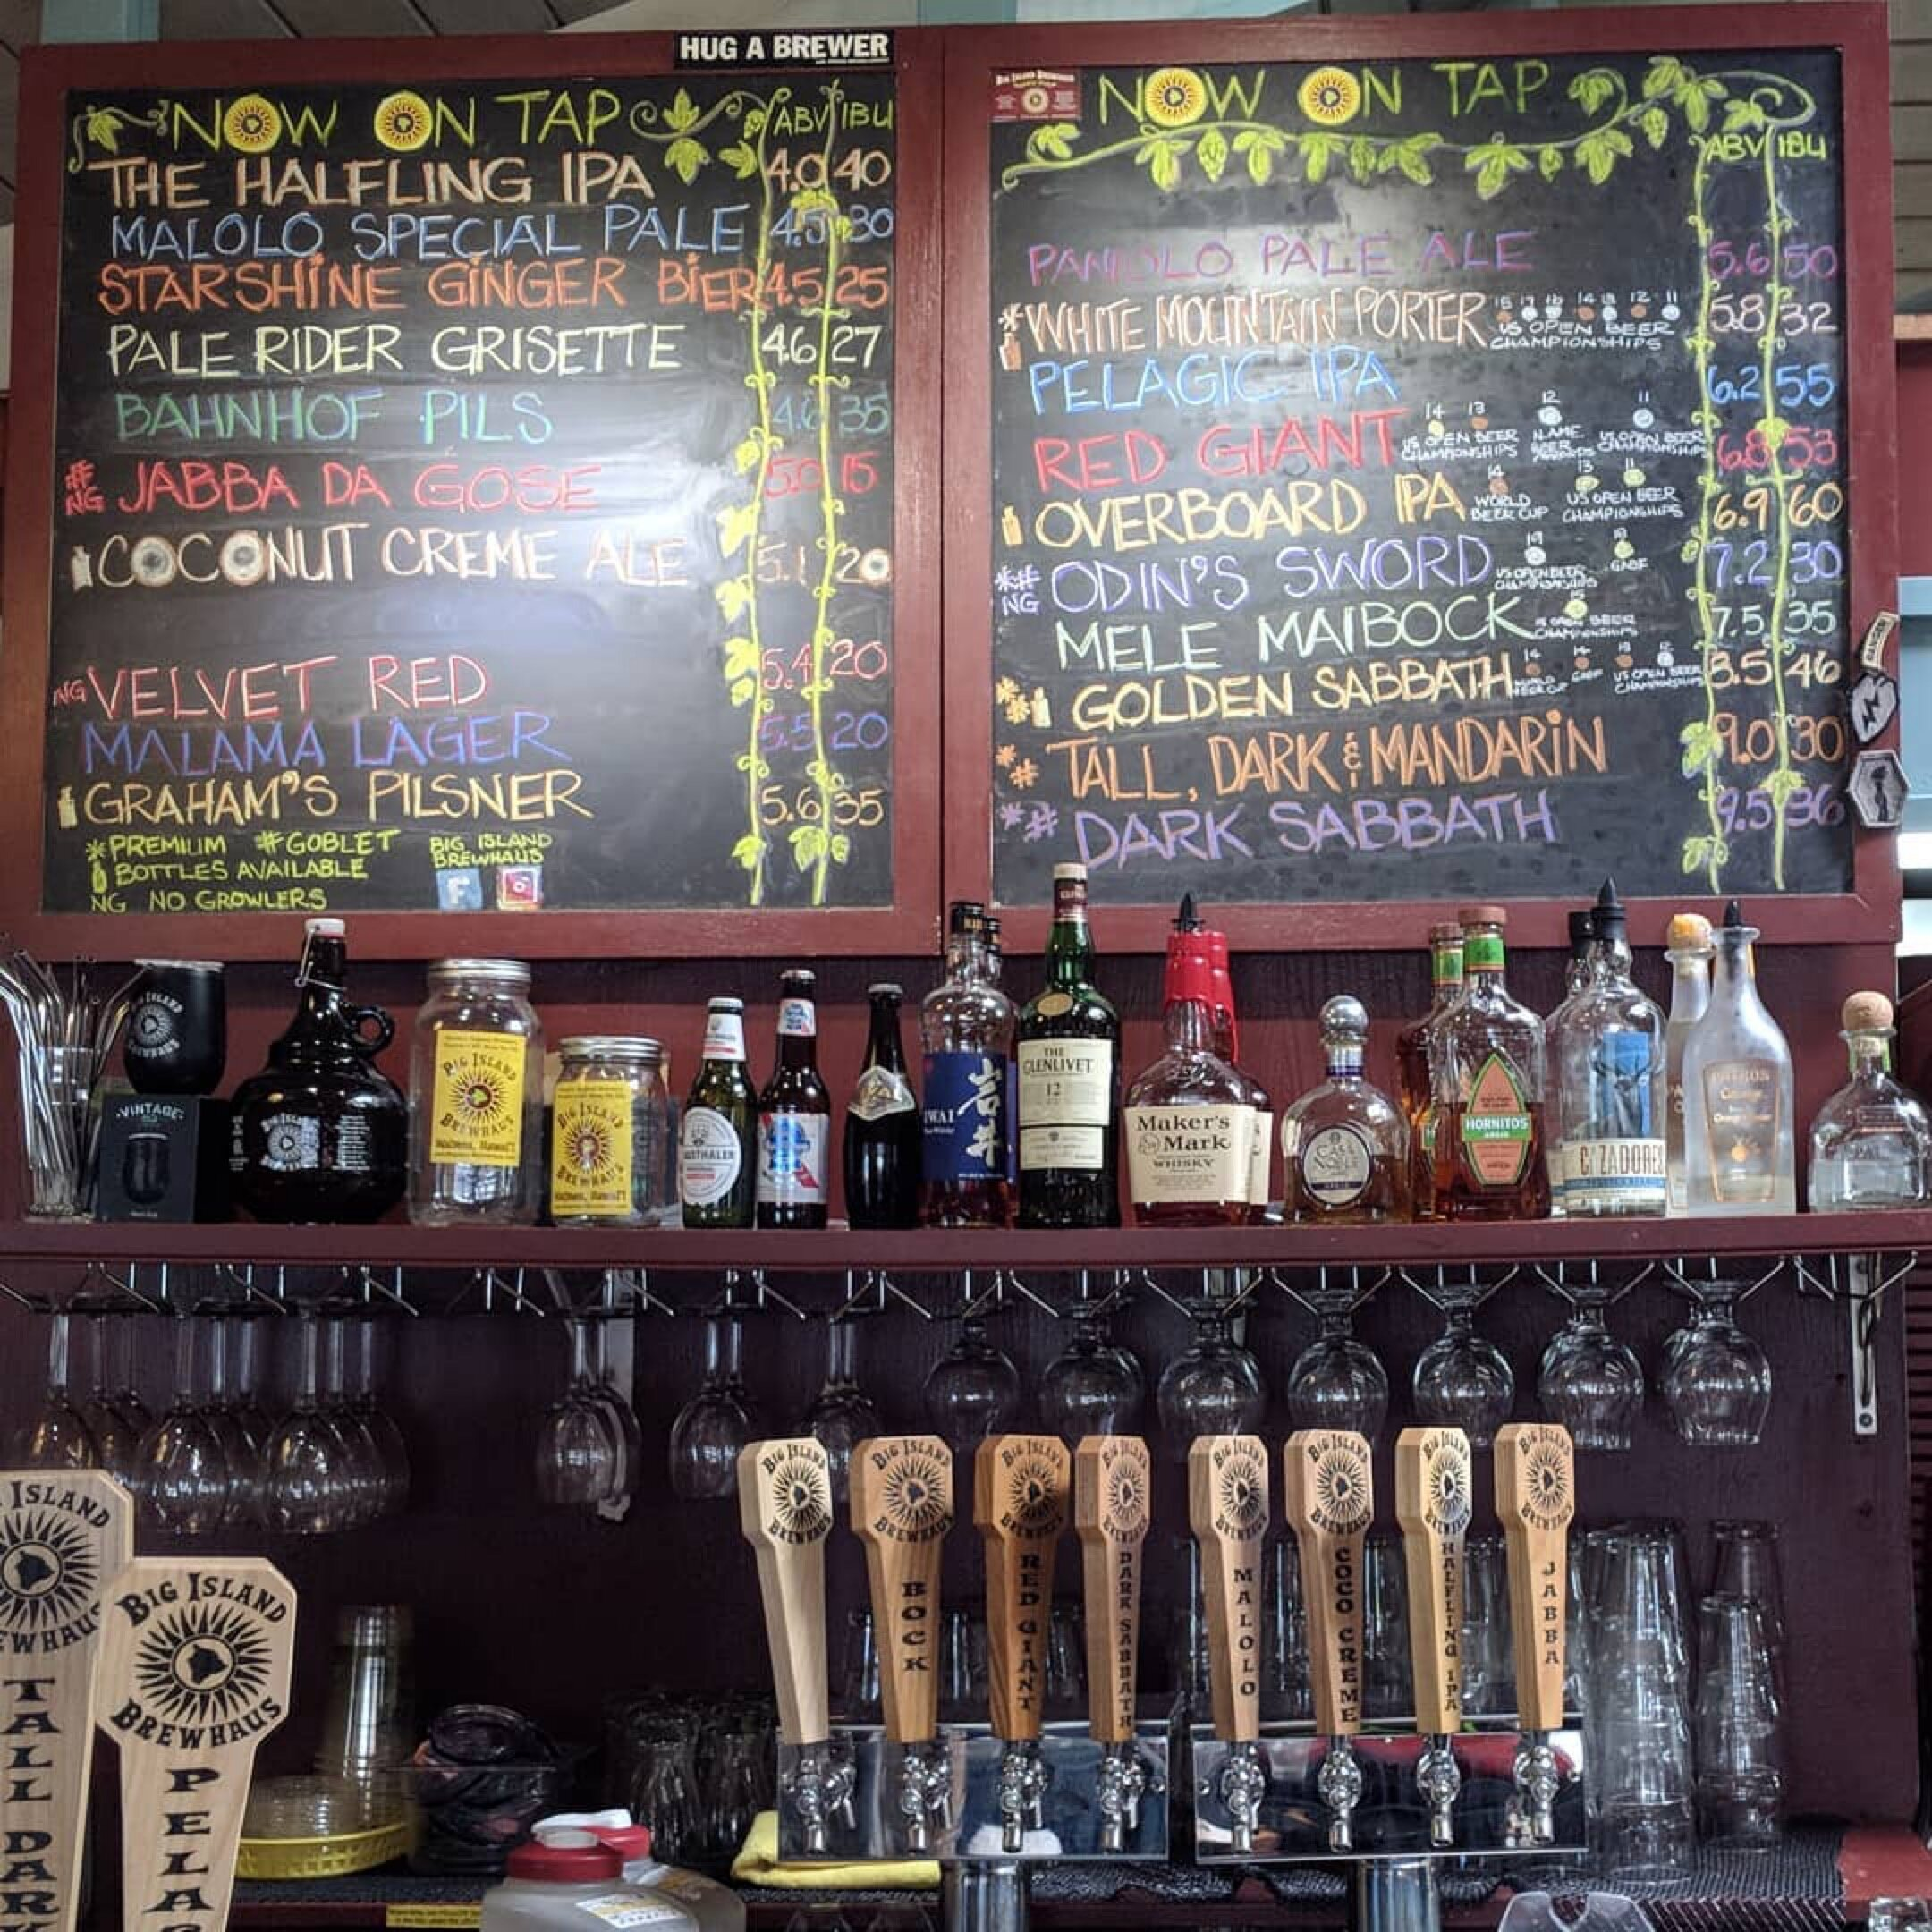 The every changing tap list at Big Island Brewhaus. Courtesy photo.